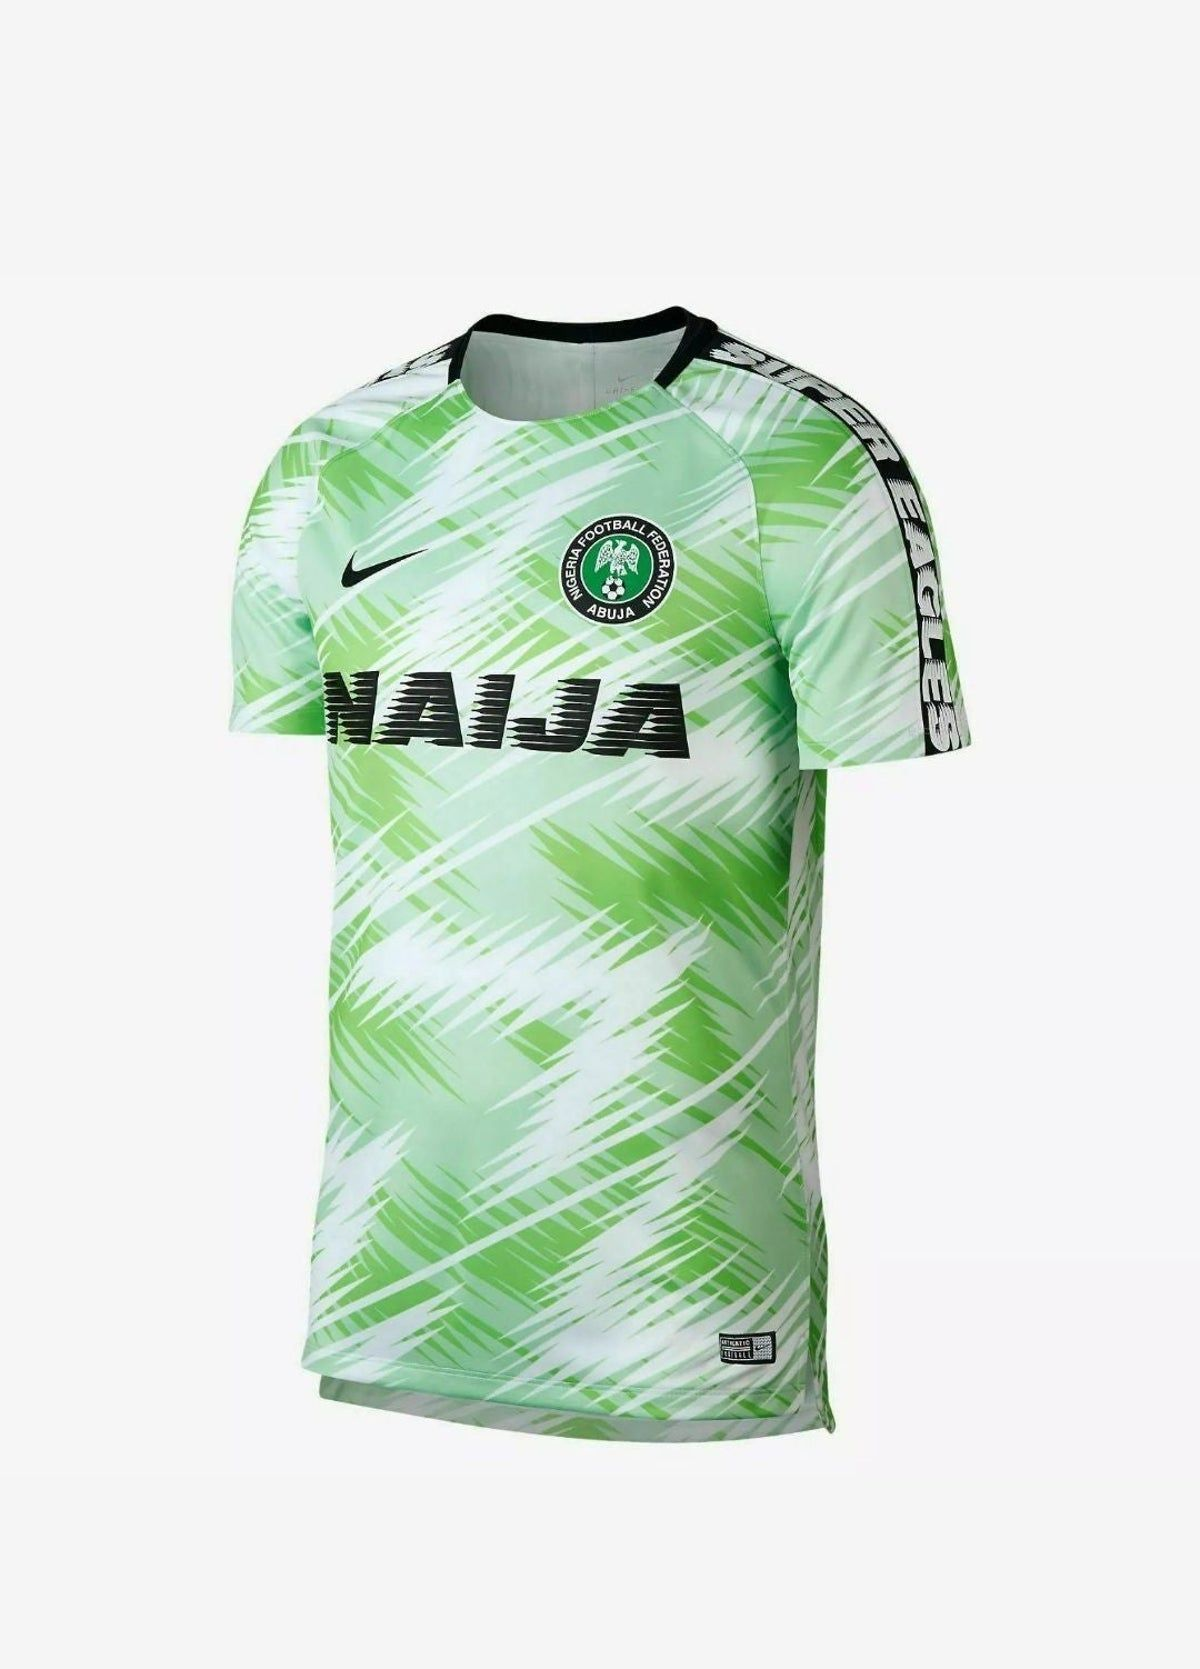 Nike Nigeria National World Cup Jersey In 2020 World Cup Jerseys Jersey Design Nigeria